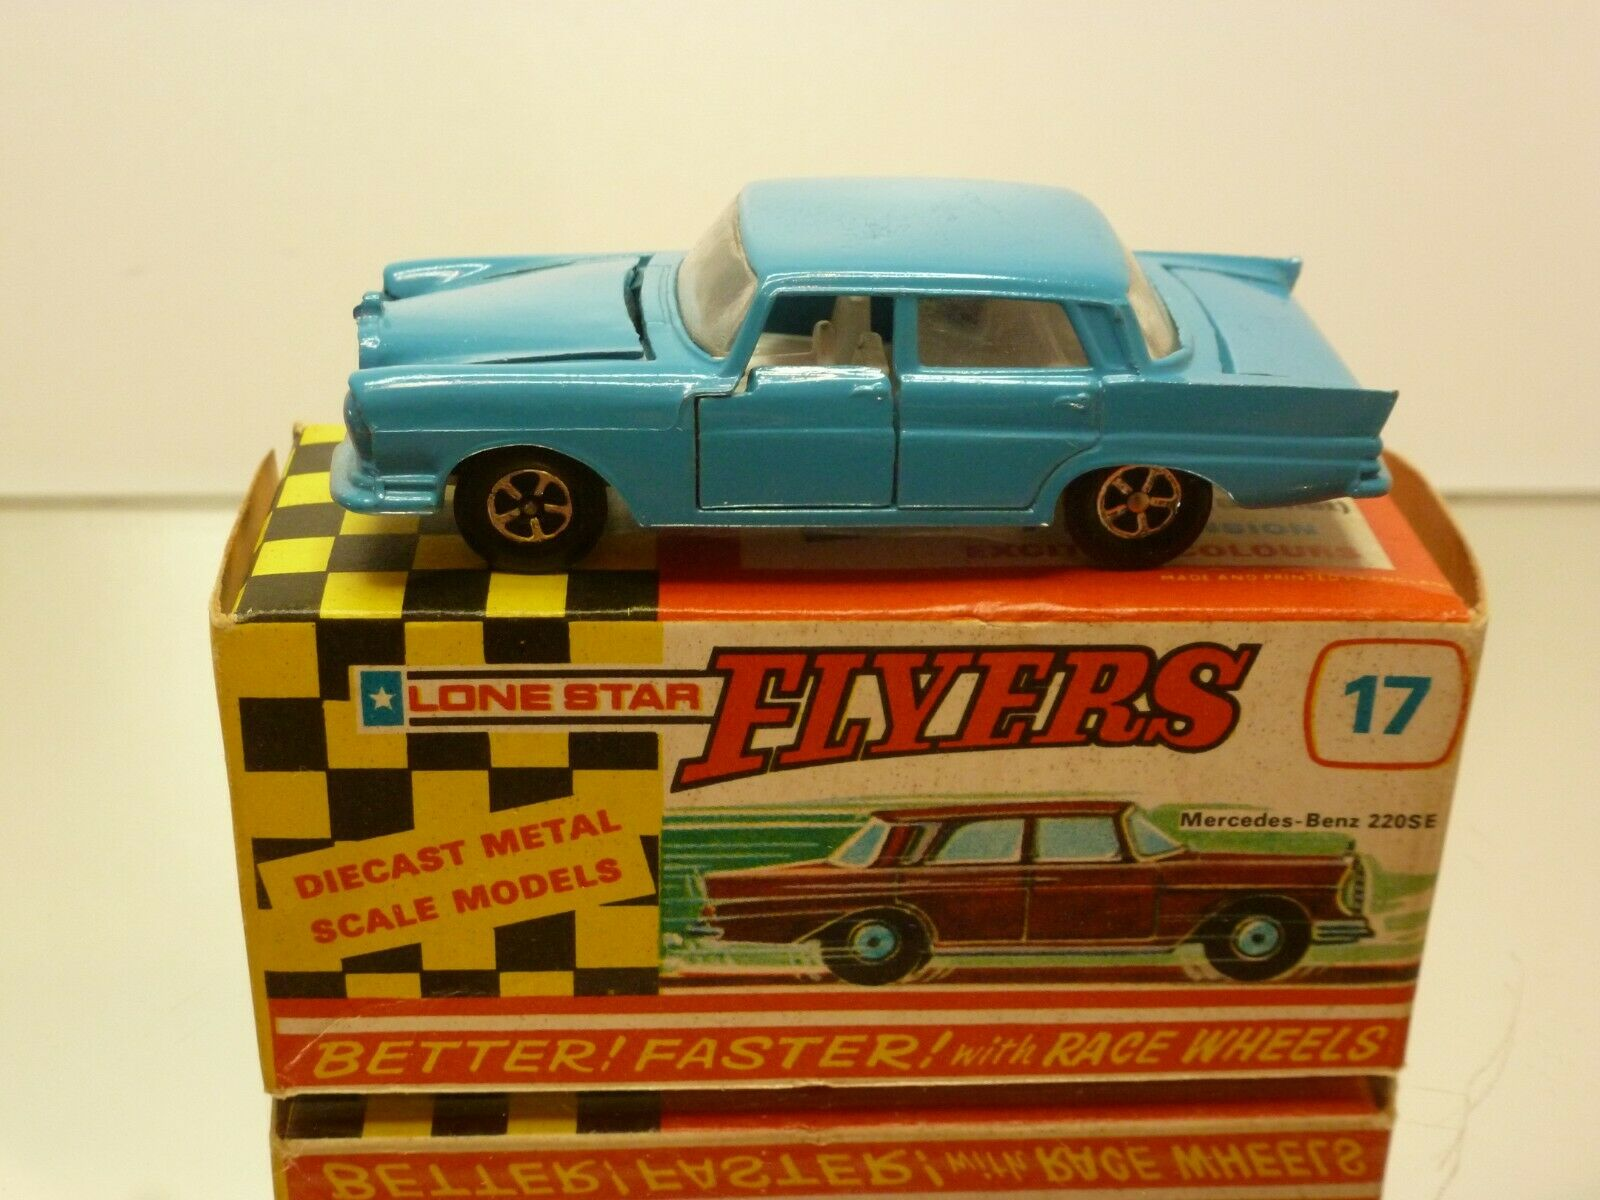 calidad de primera clase FLYERS LONEEstrella 17 MERCEDES BENZ 220 SE - azul 1 1 1 63 - VERY GOOD IN BOX (IMPY)  suministro de productos de calidad